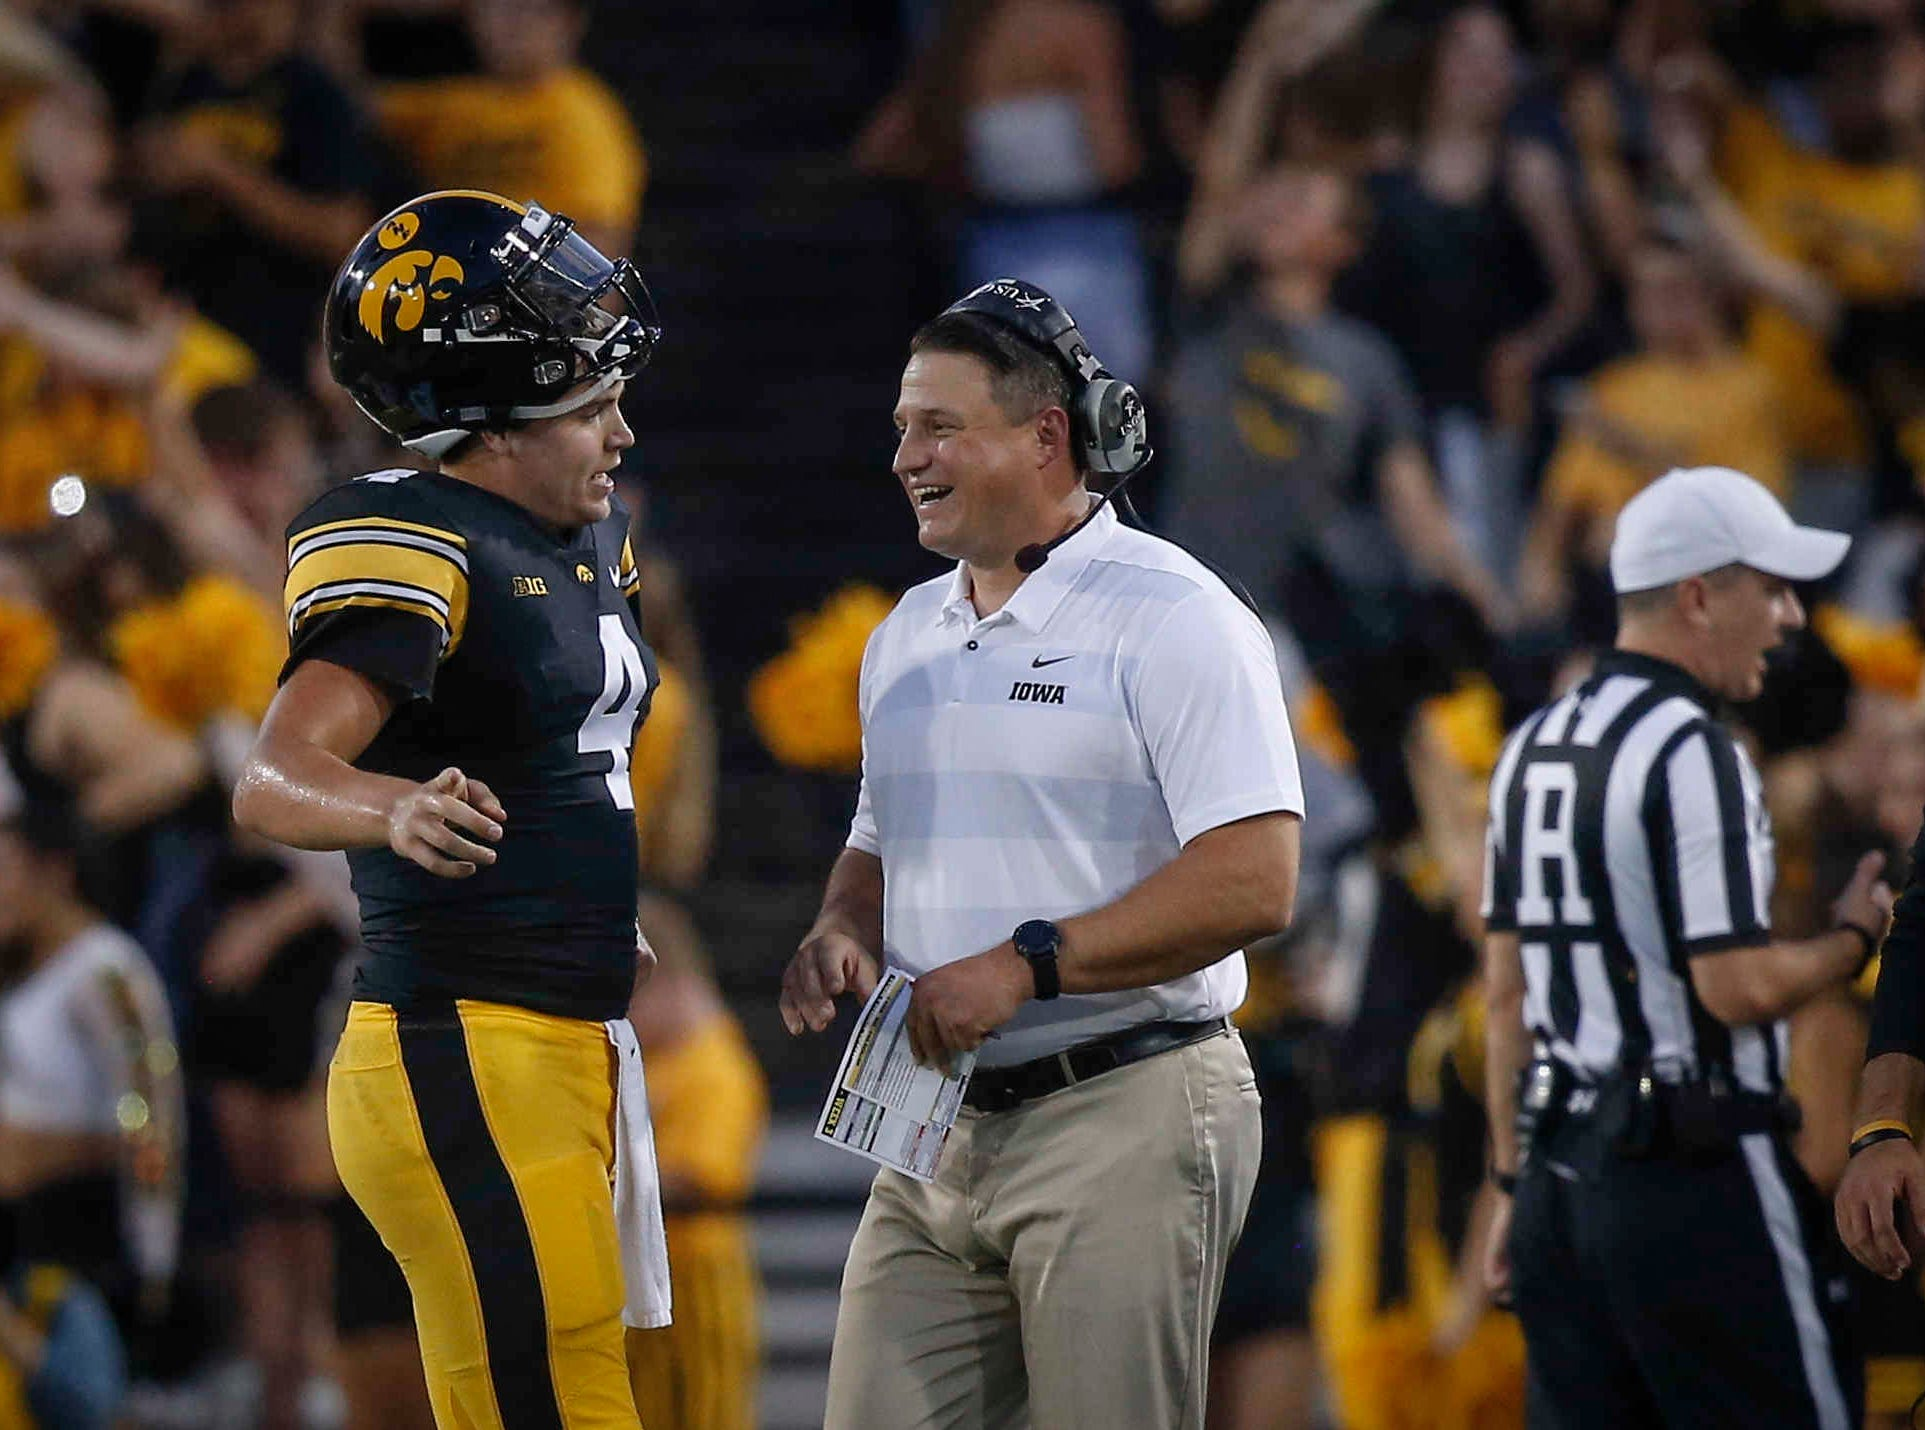 Iowa quarterback Nate Stanley speaks with offensive coordinator Brian Ferentz during a time out against Northern Iowa on Saturday, Sept. 15, 2018, at Kinnick Stadium in Iowa City.